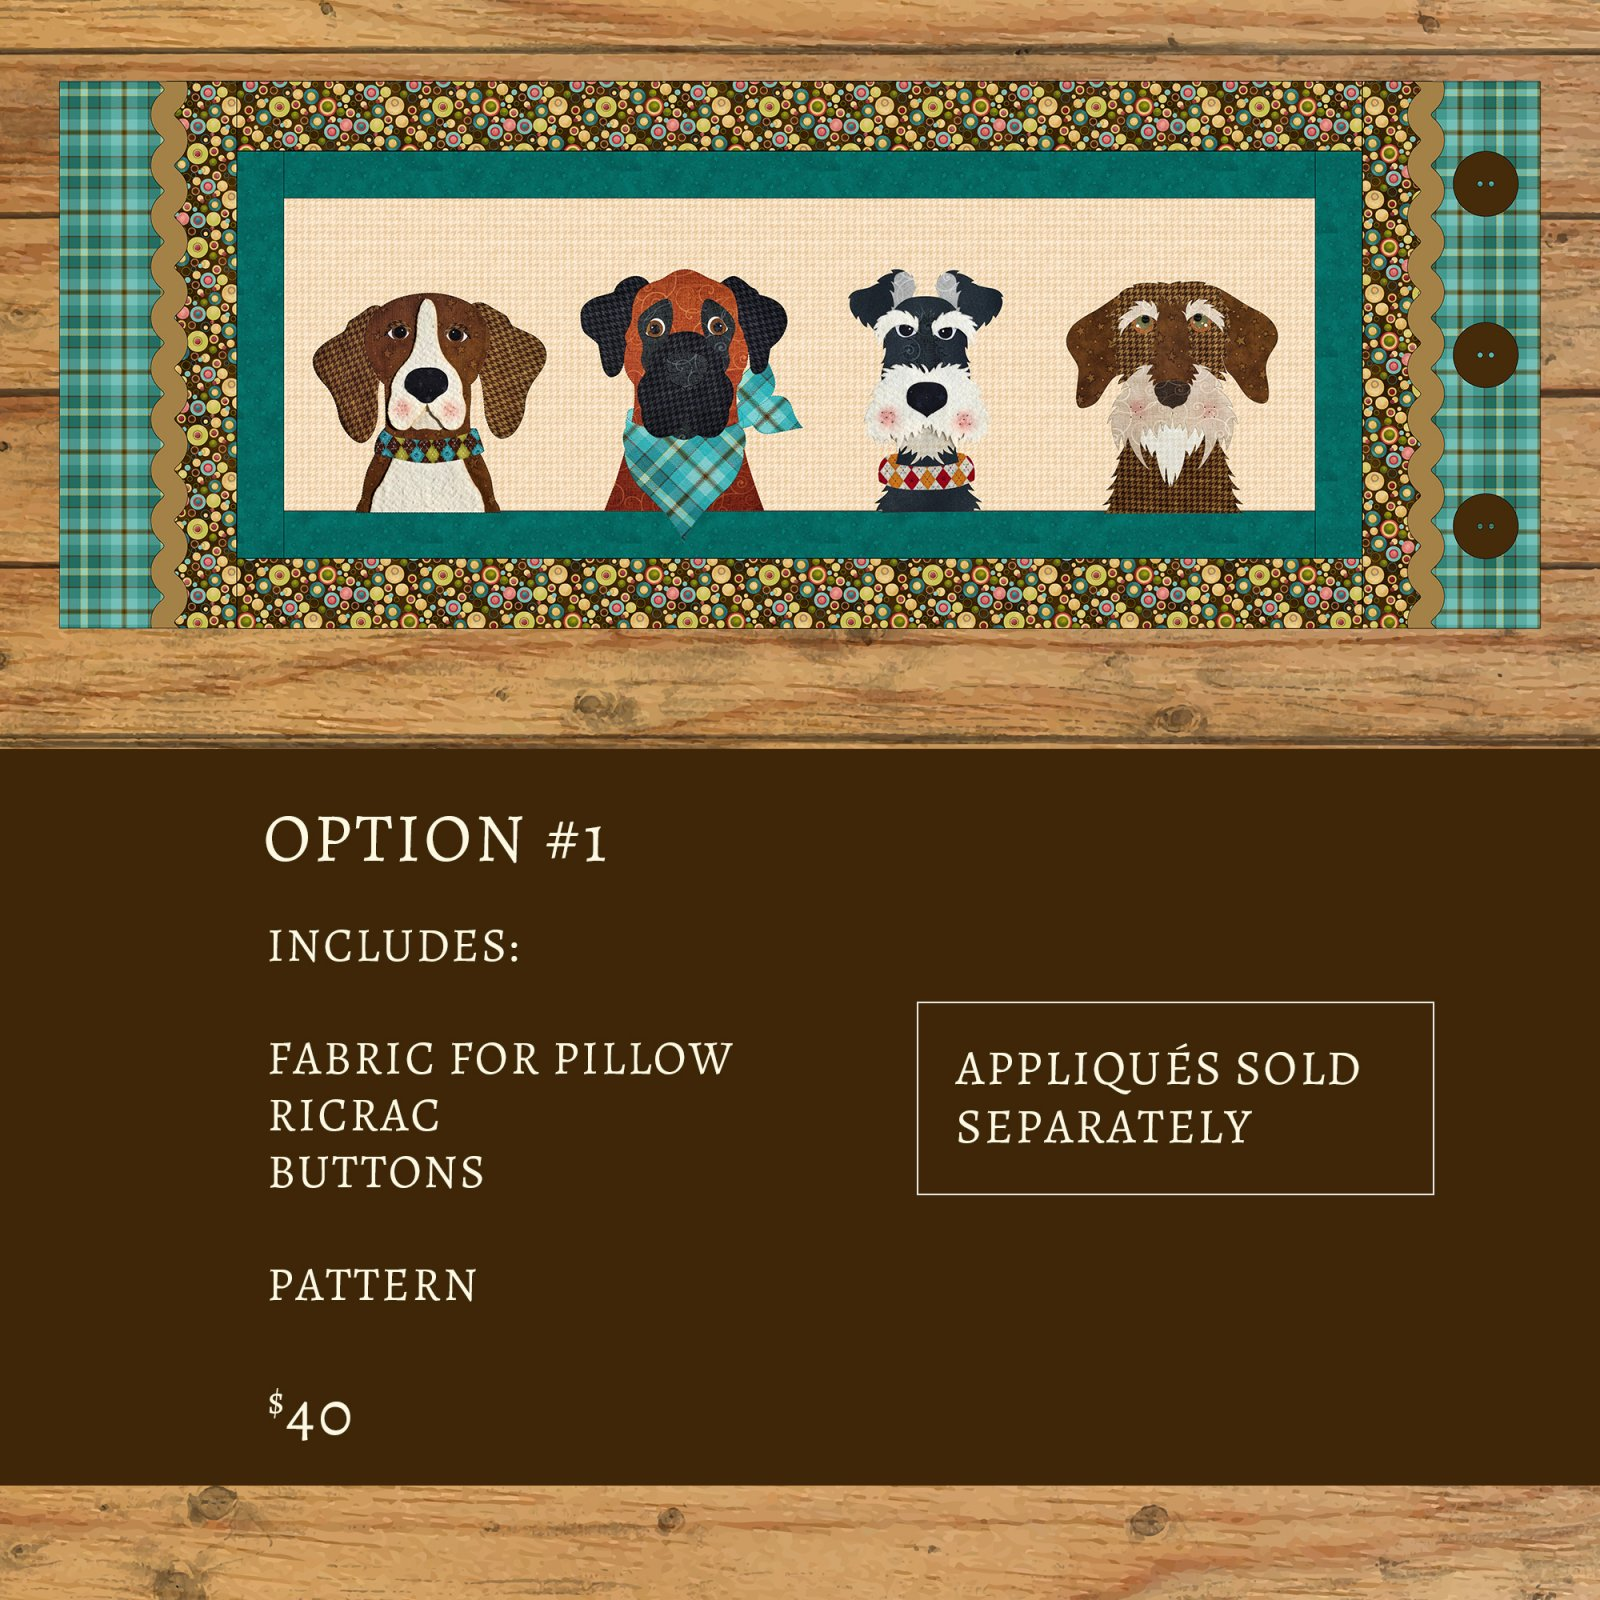 Furry Friends Applique Bench Pillow Kit